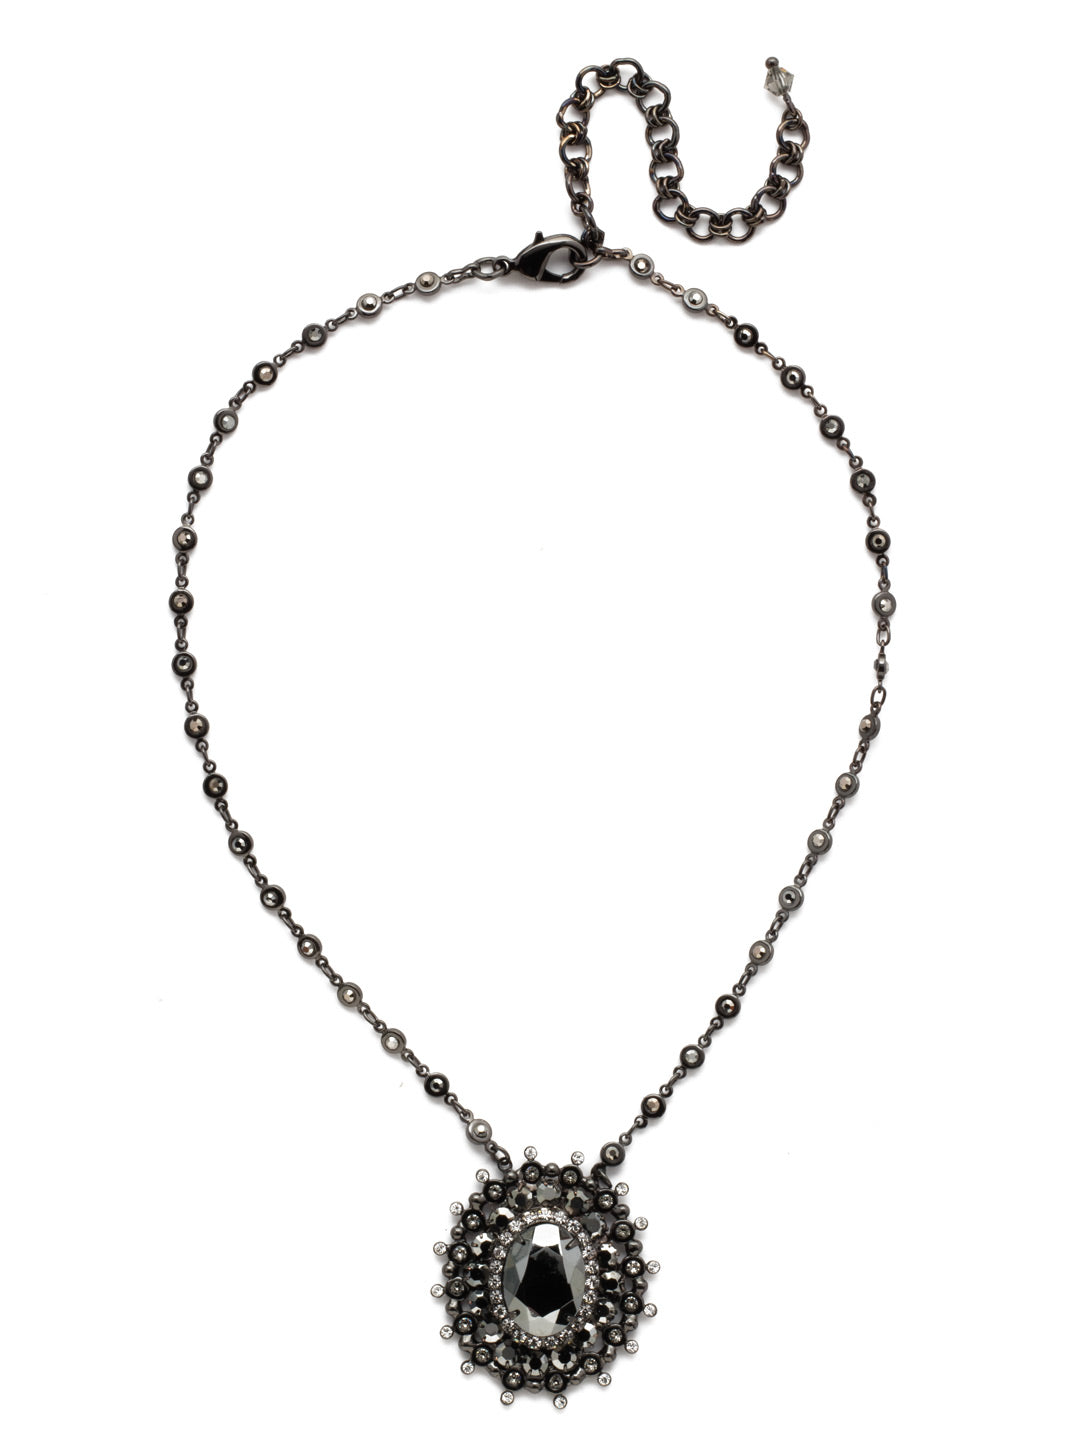 Intricate Oval Pendant Necklace - NBP117GMMMO